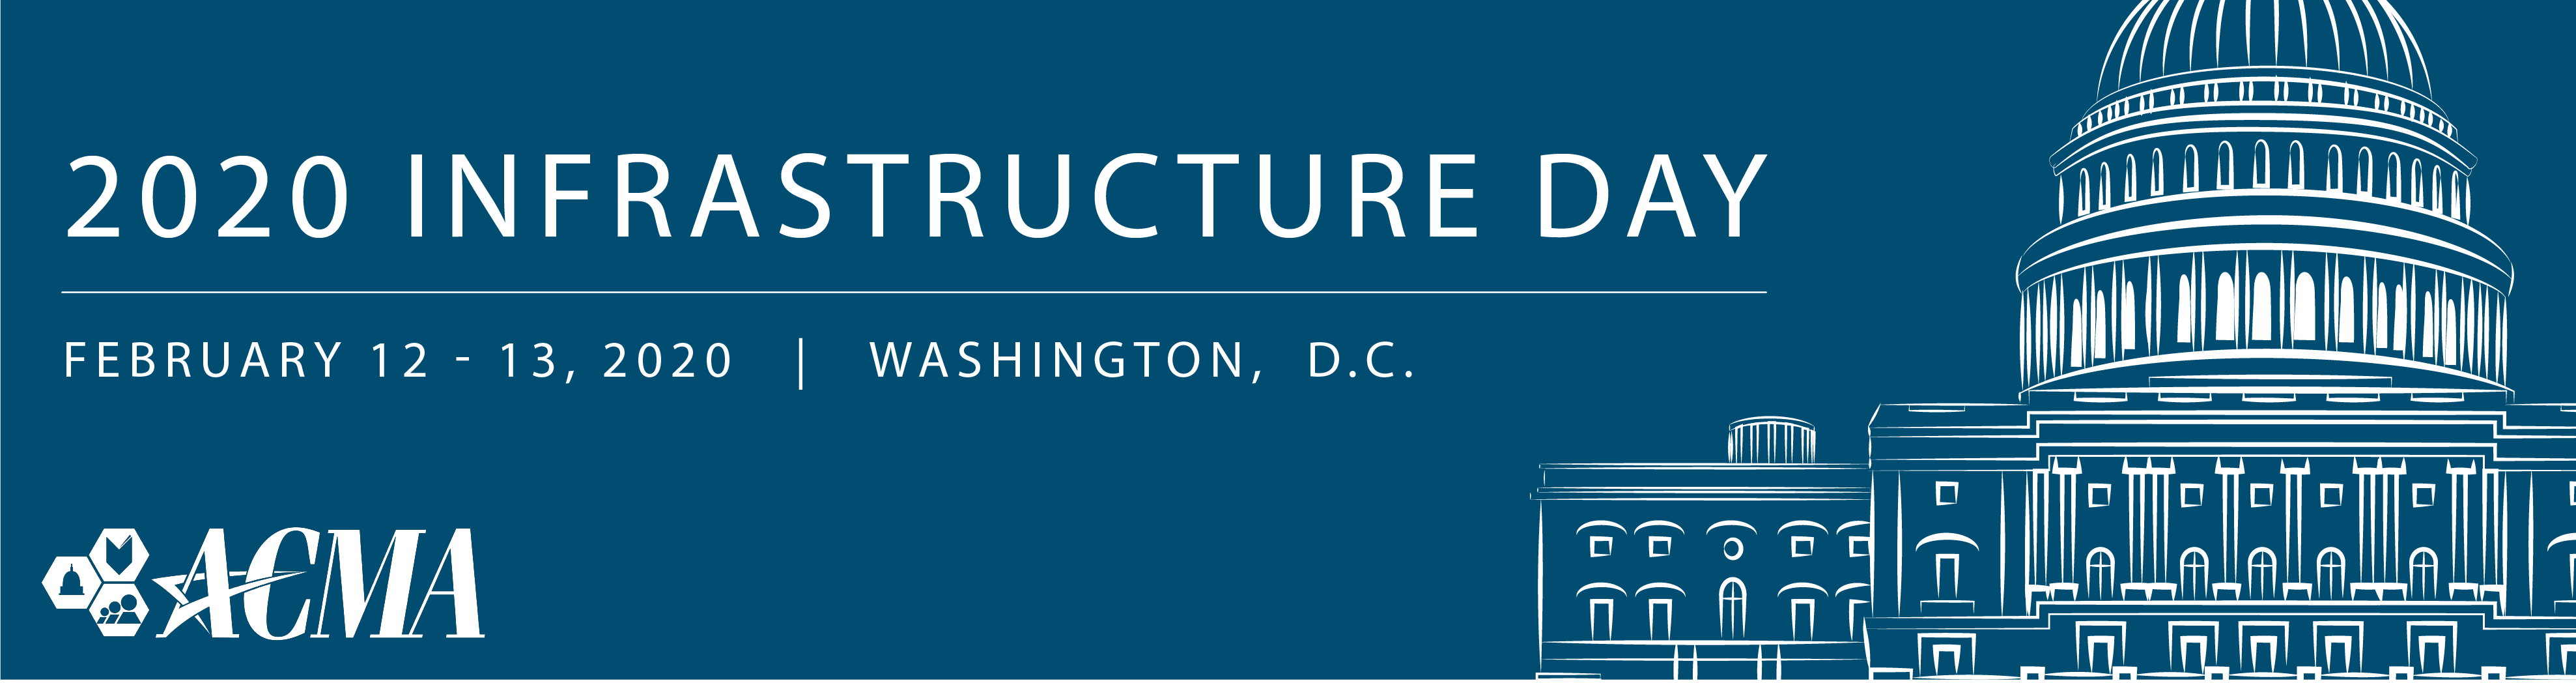 ACMA's Infrastructure Day 2020